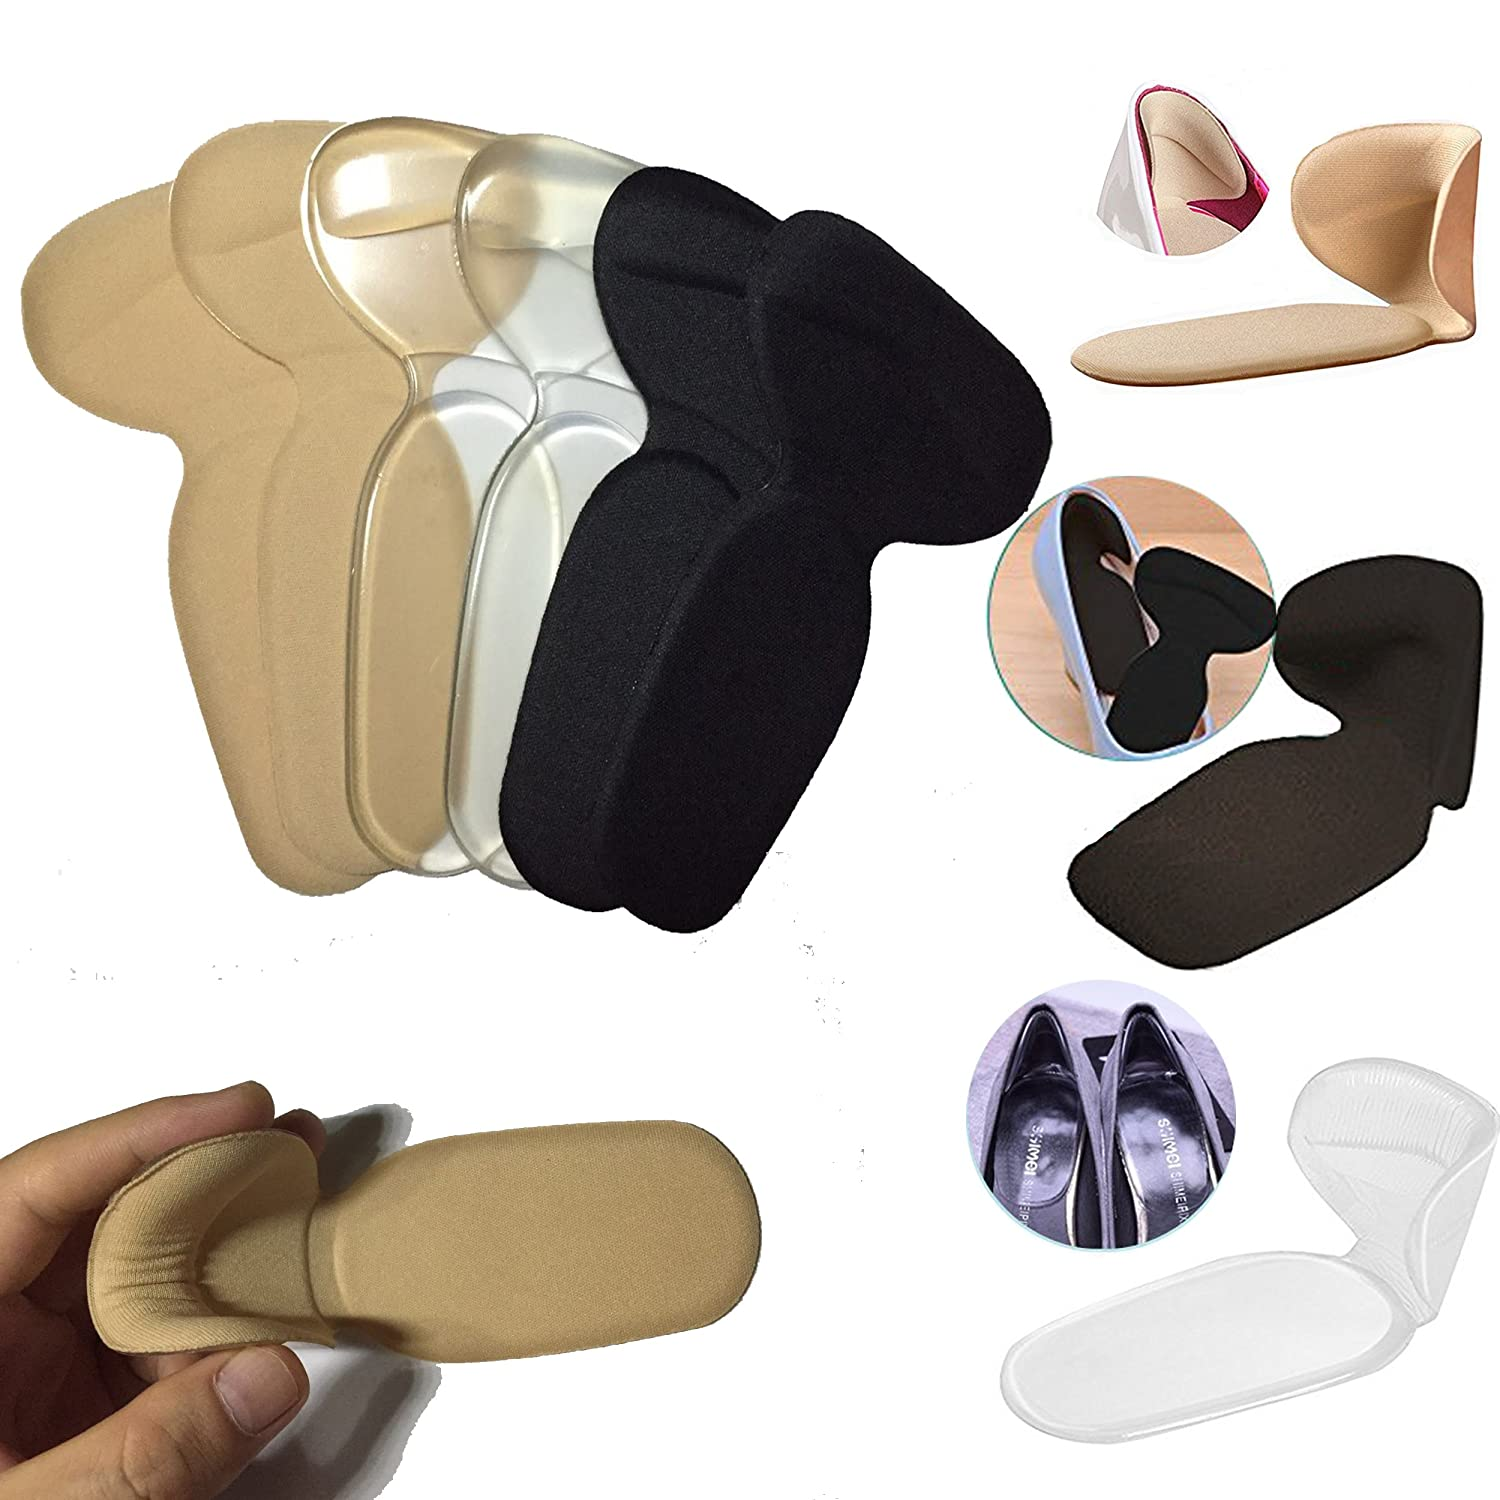 541b8c7d12662 Amazon.com: Heel Pads Cushion Grips, Gel Inserts Insoles Liners for ...